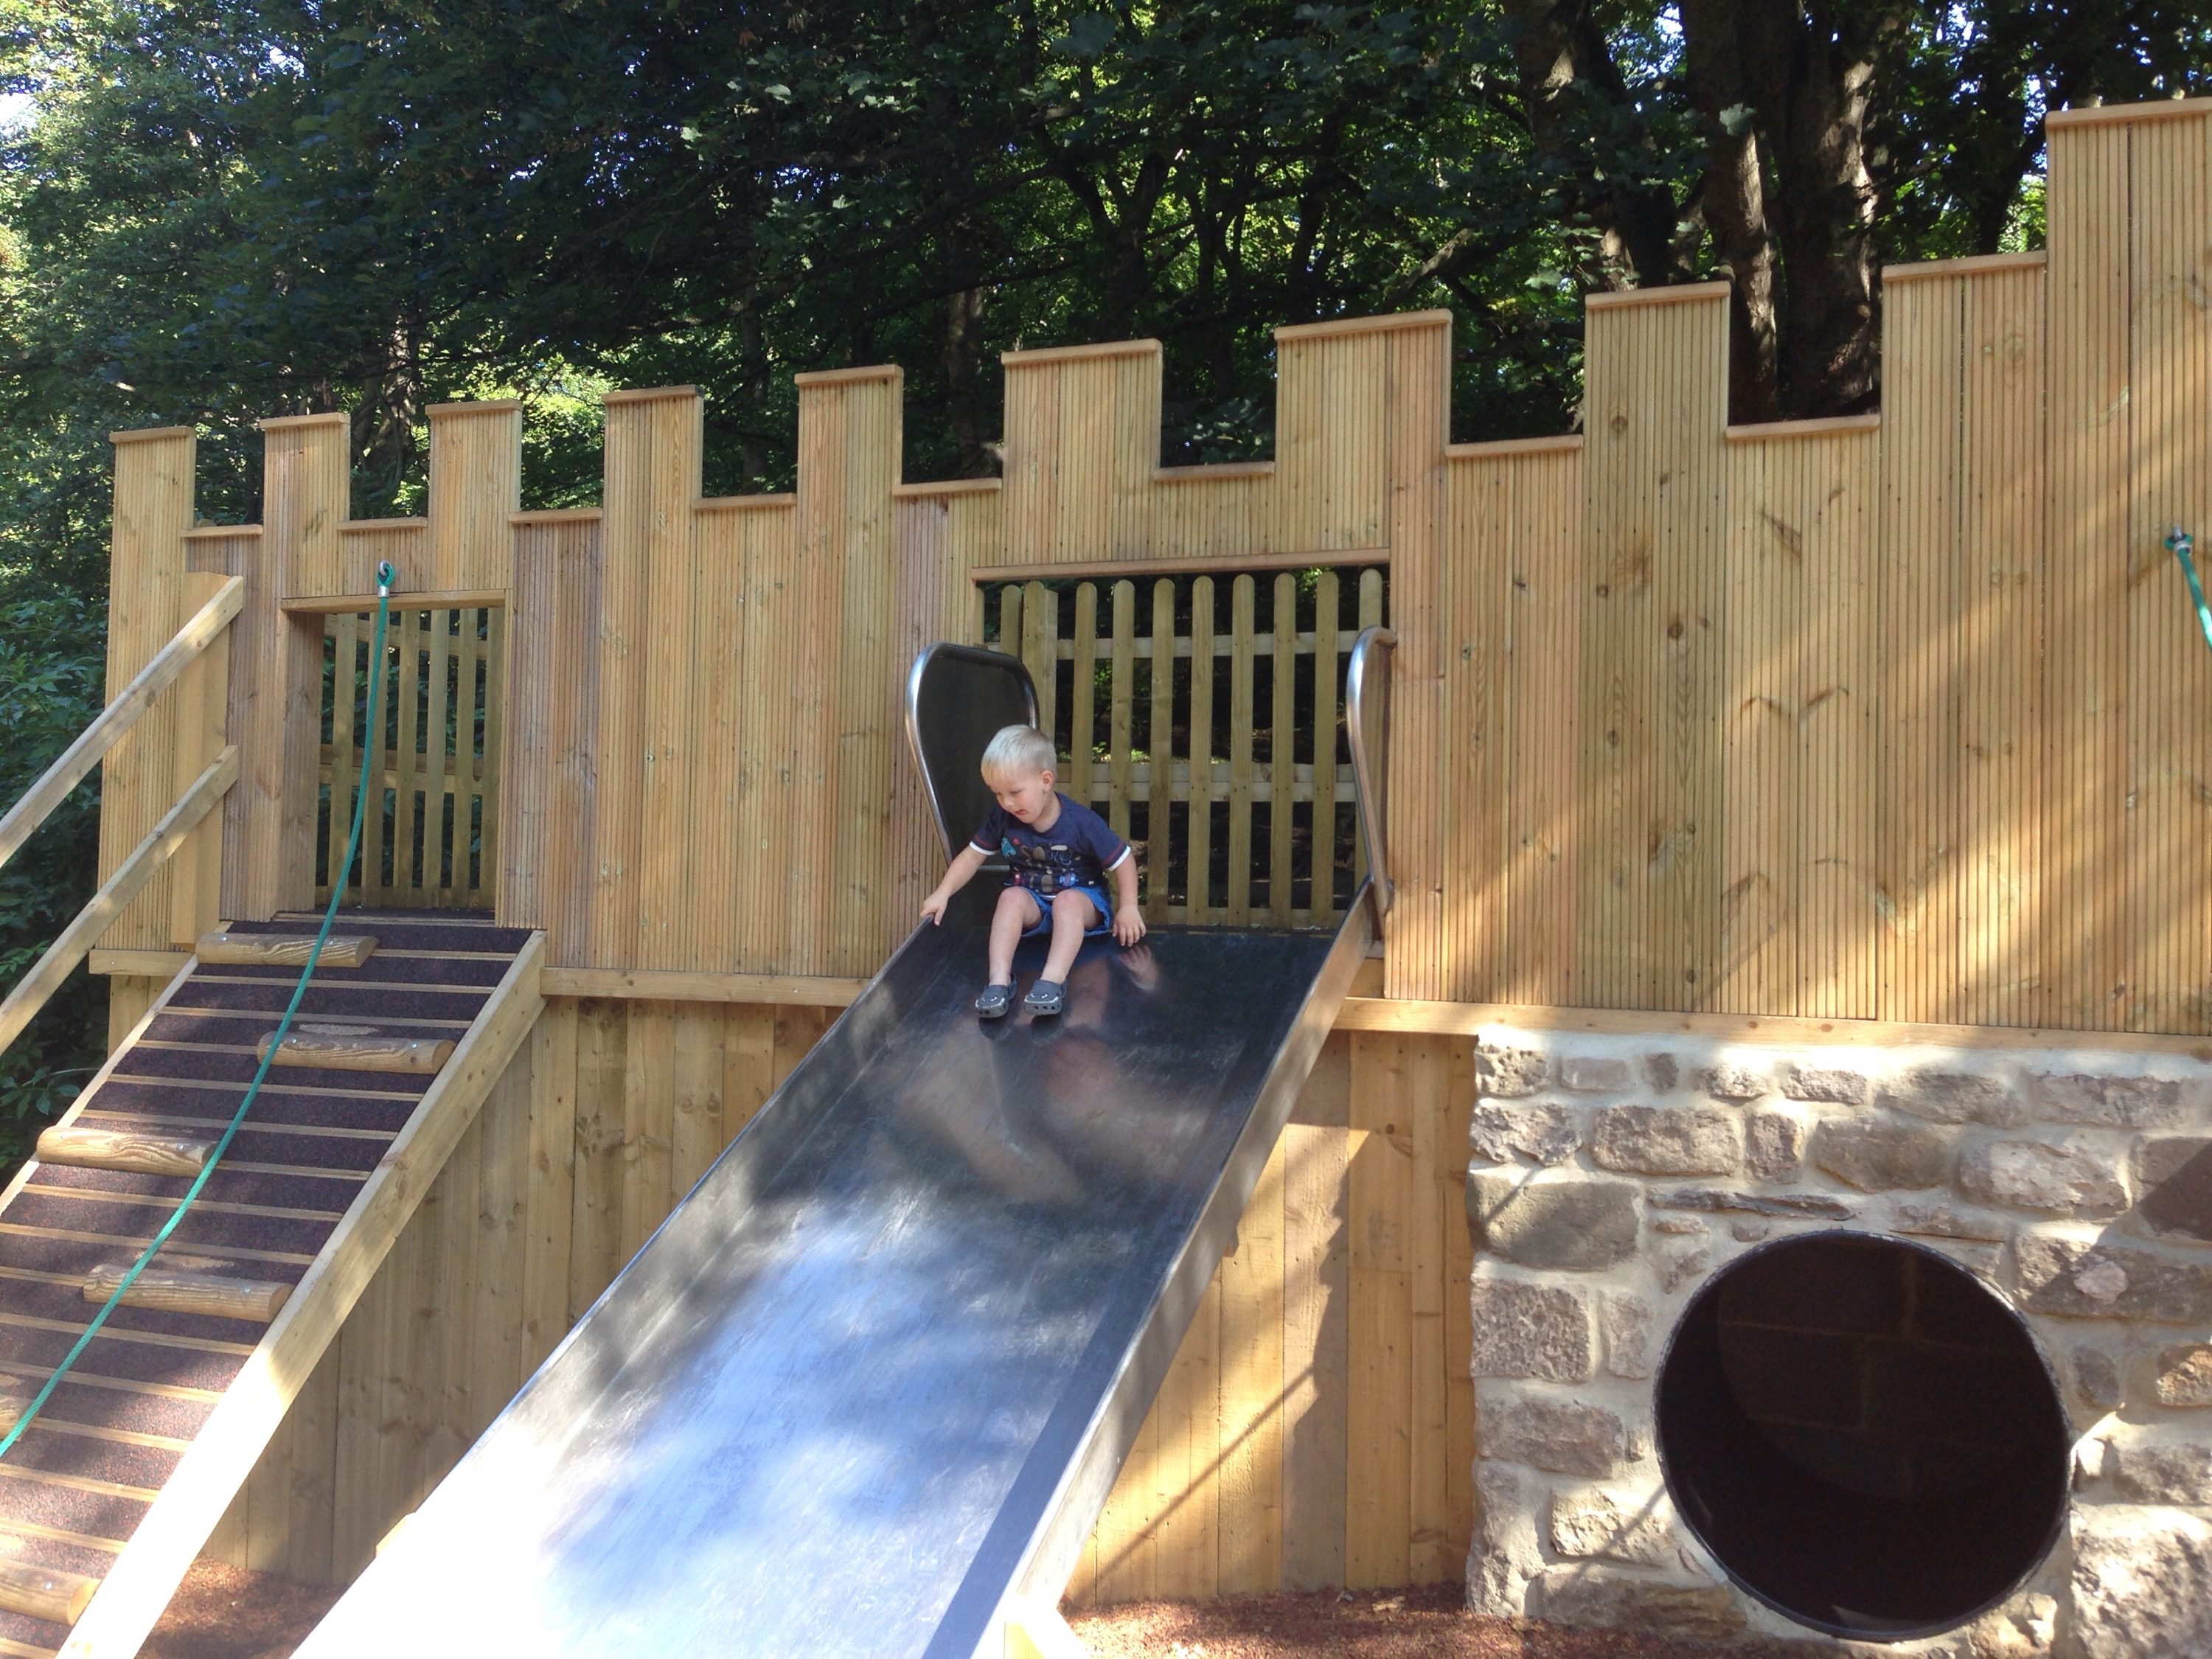 playgrounds in north tyneside - northumberland park castle and slide